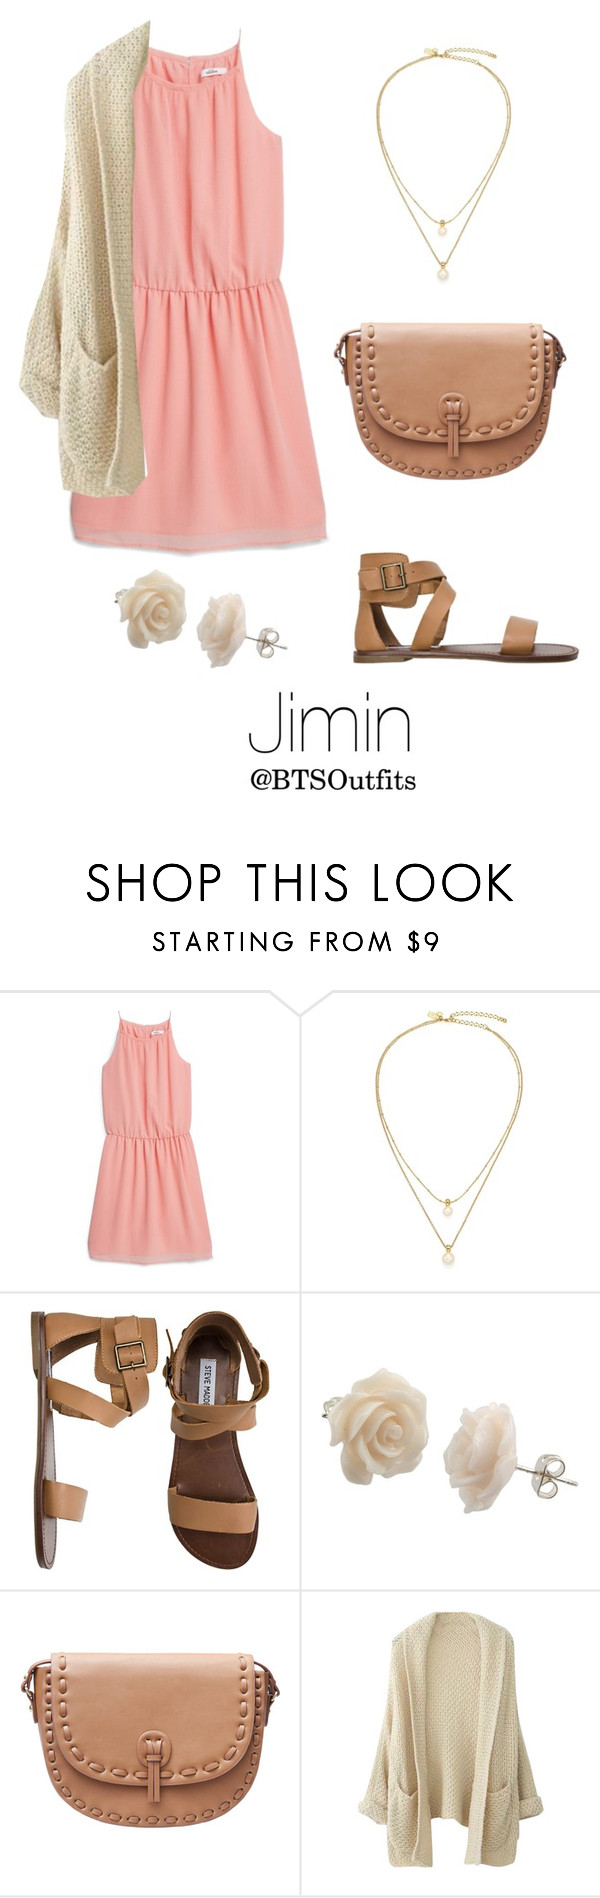 """Church with Jimin"" by btsoutfits ❤ liked on Polyvore featuring MANGO, Kate Spade and Steve Madden"